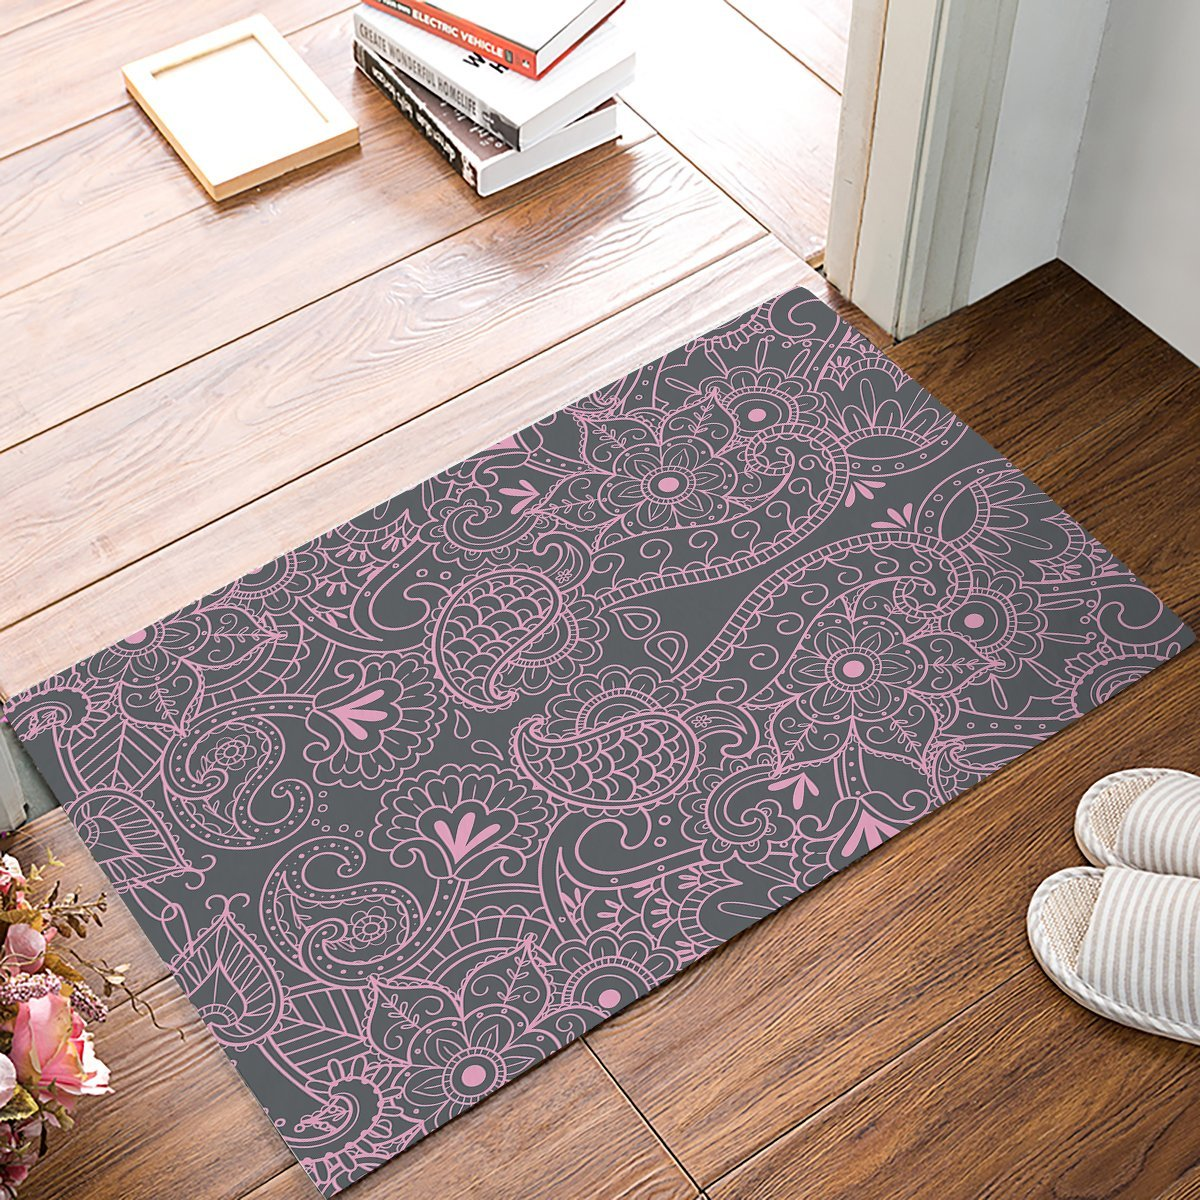 Vintage Mandala Floral Grey And Pink Decortaive Door Mats Kitchen Floor Bath Entrance Rug Mat Absorbent Indoor Bathroom